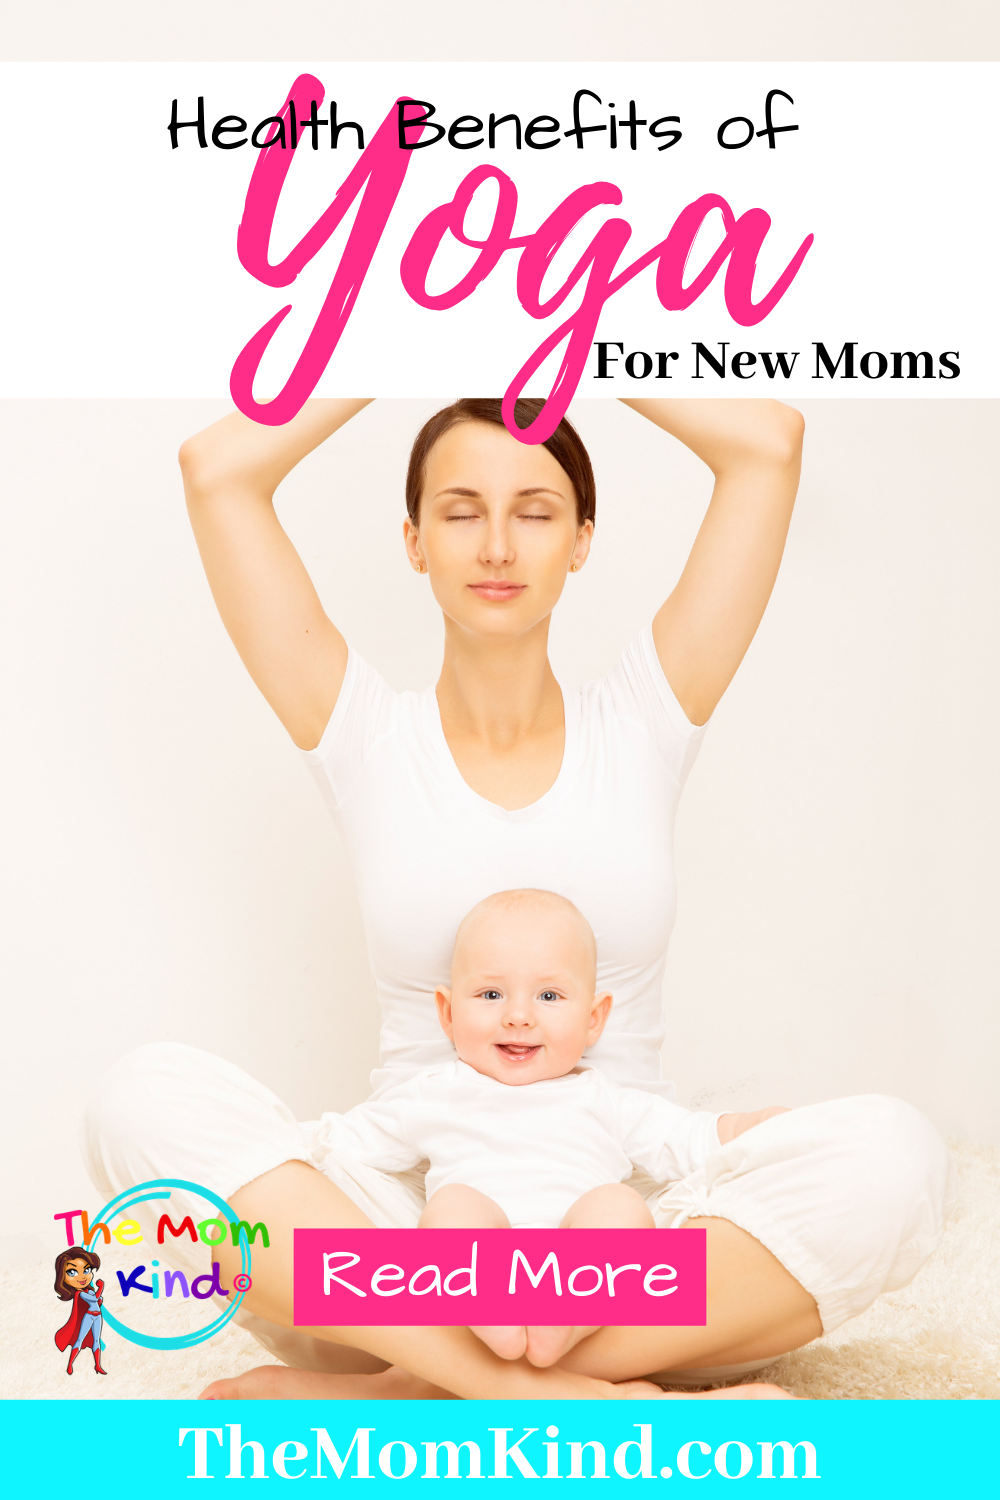 Health Benefits of Yoga for New Moms